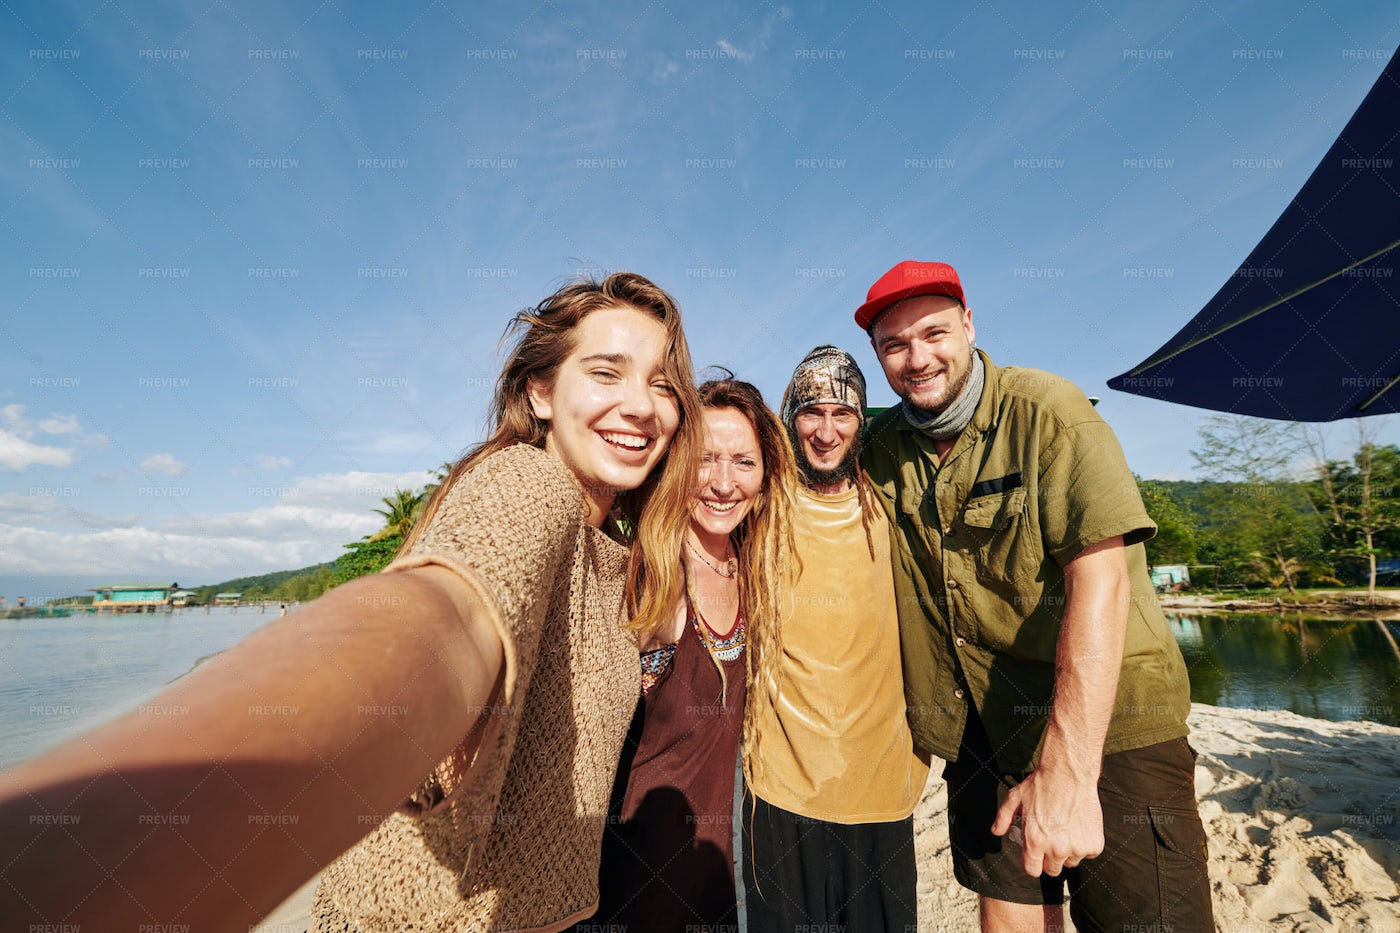 Young People Posing For Selfie On Beach: Stock Photos